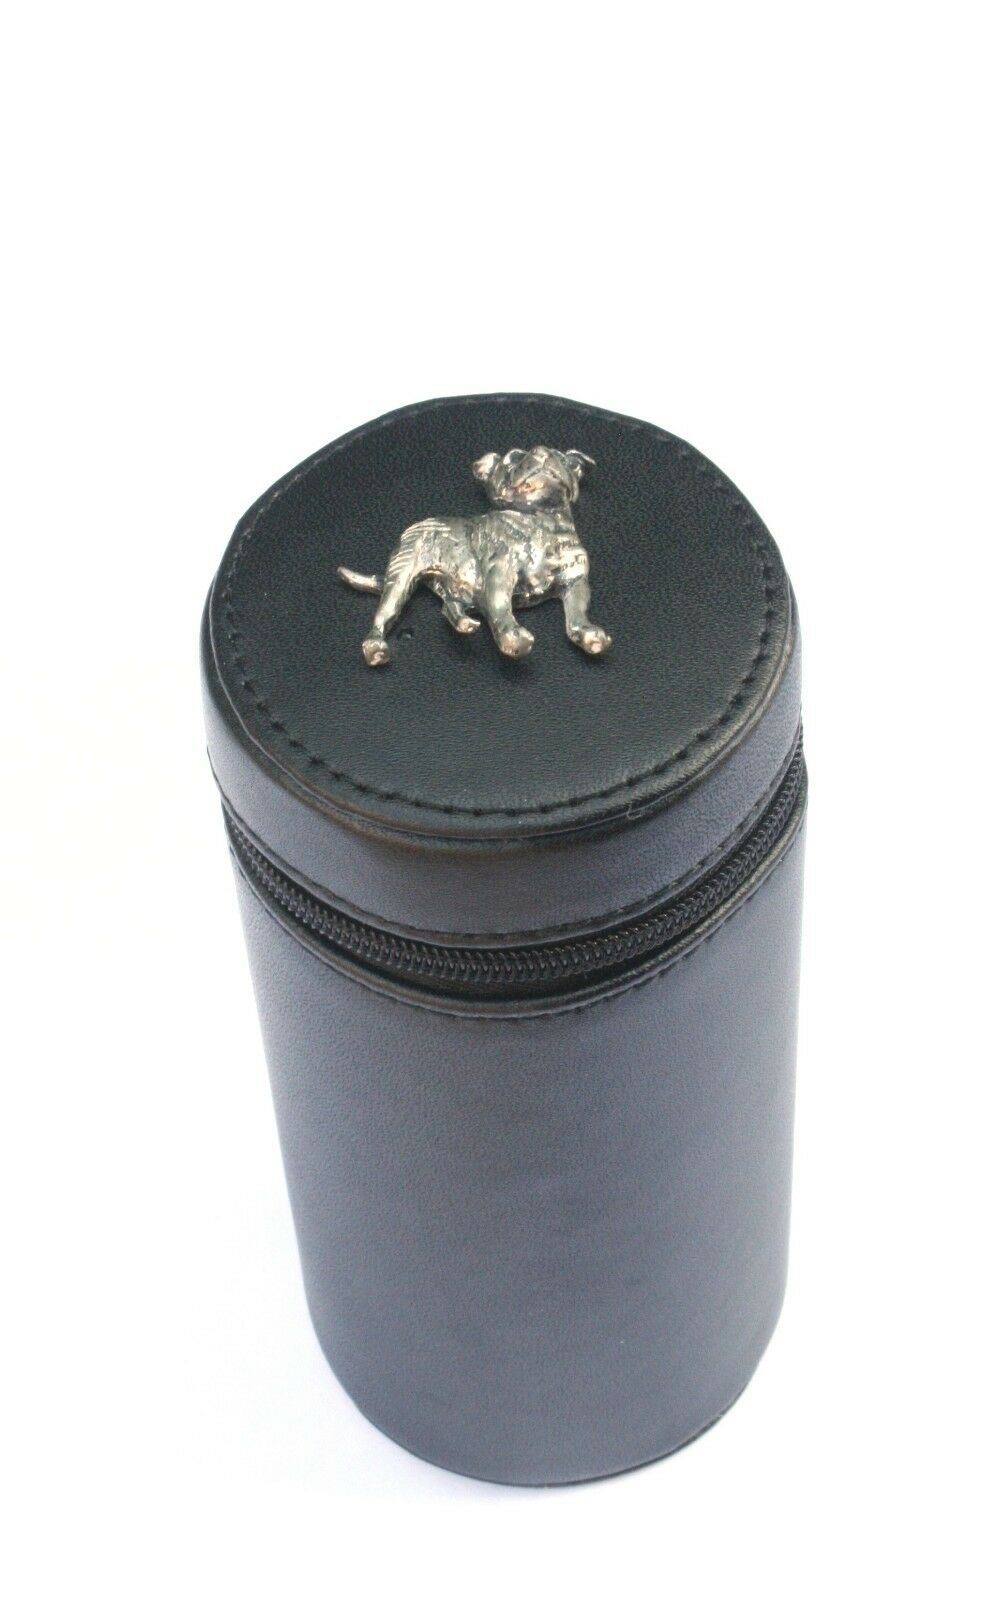 Staffy Shooting Peg Position Finder Numberojo Cups 1-10 negro Leather Case